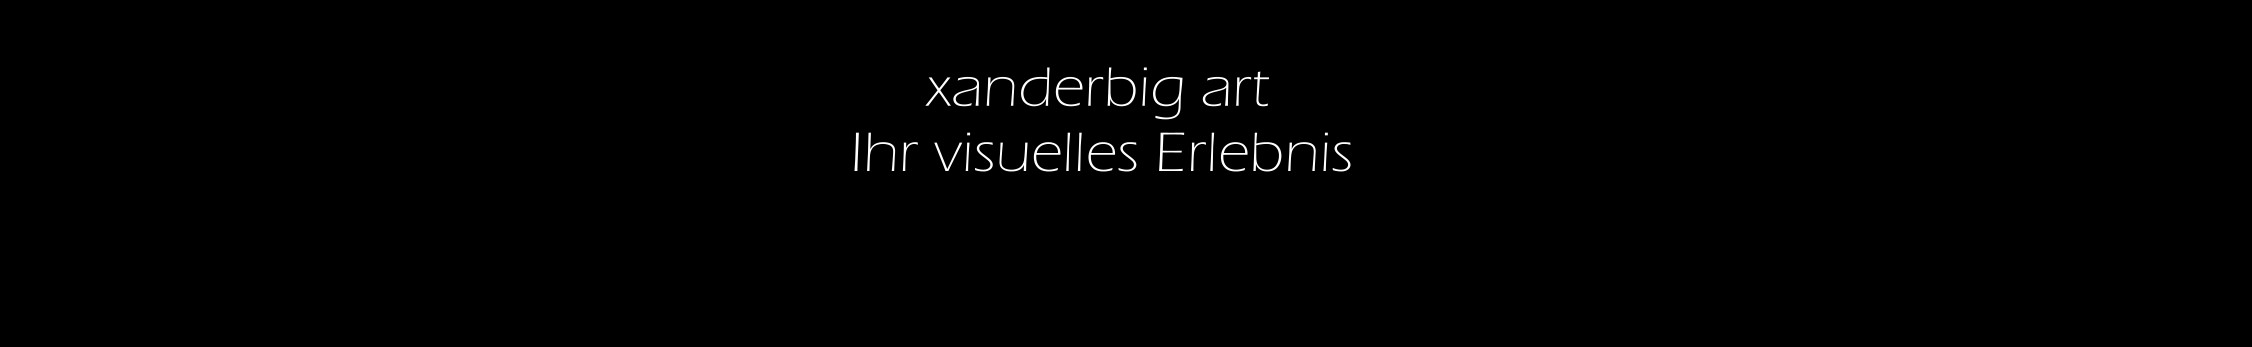 xanderbig art WEBSTARTPAGE